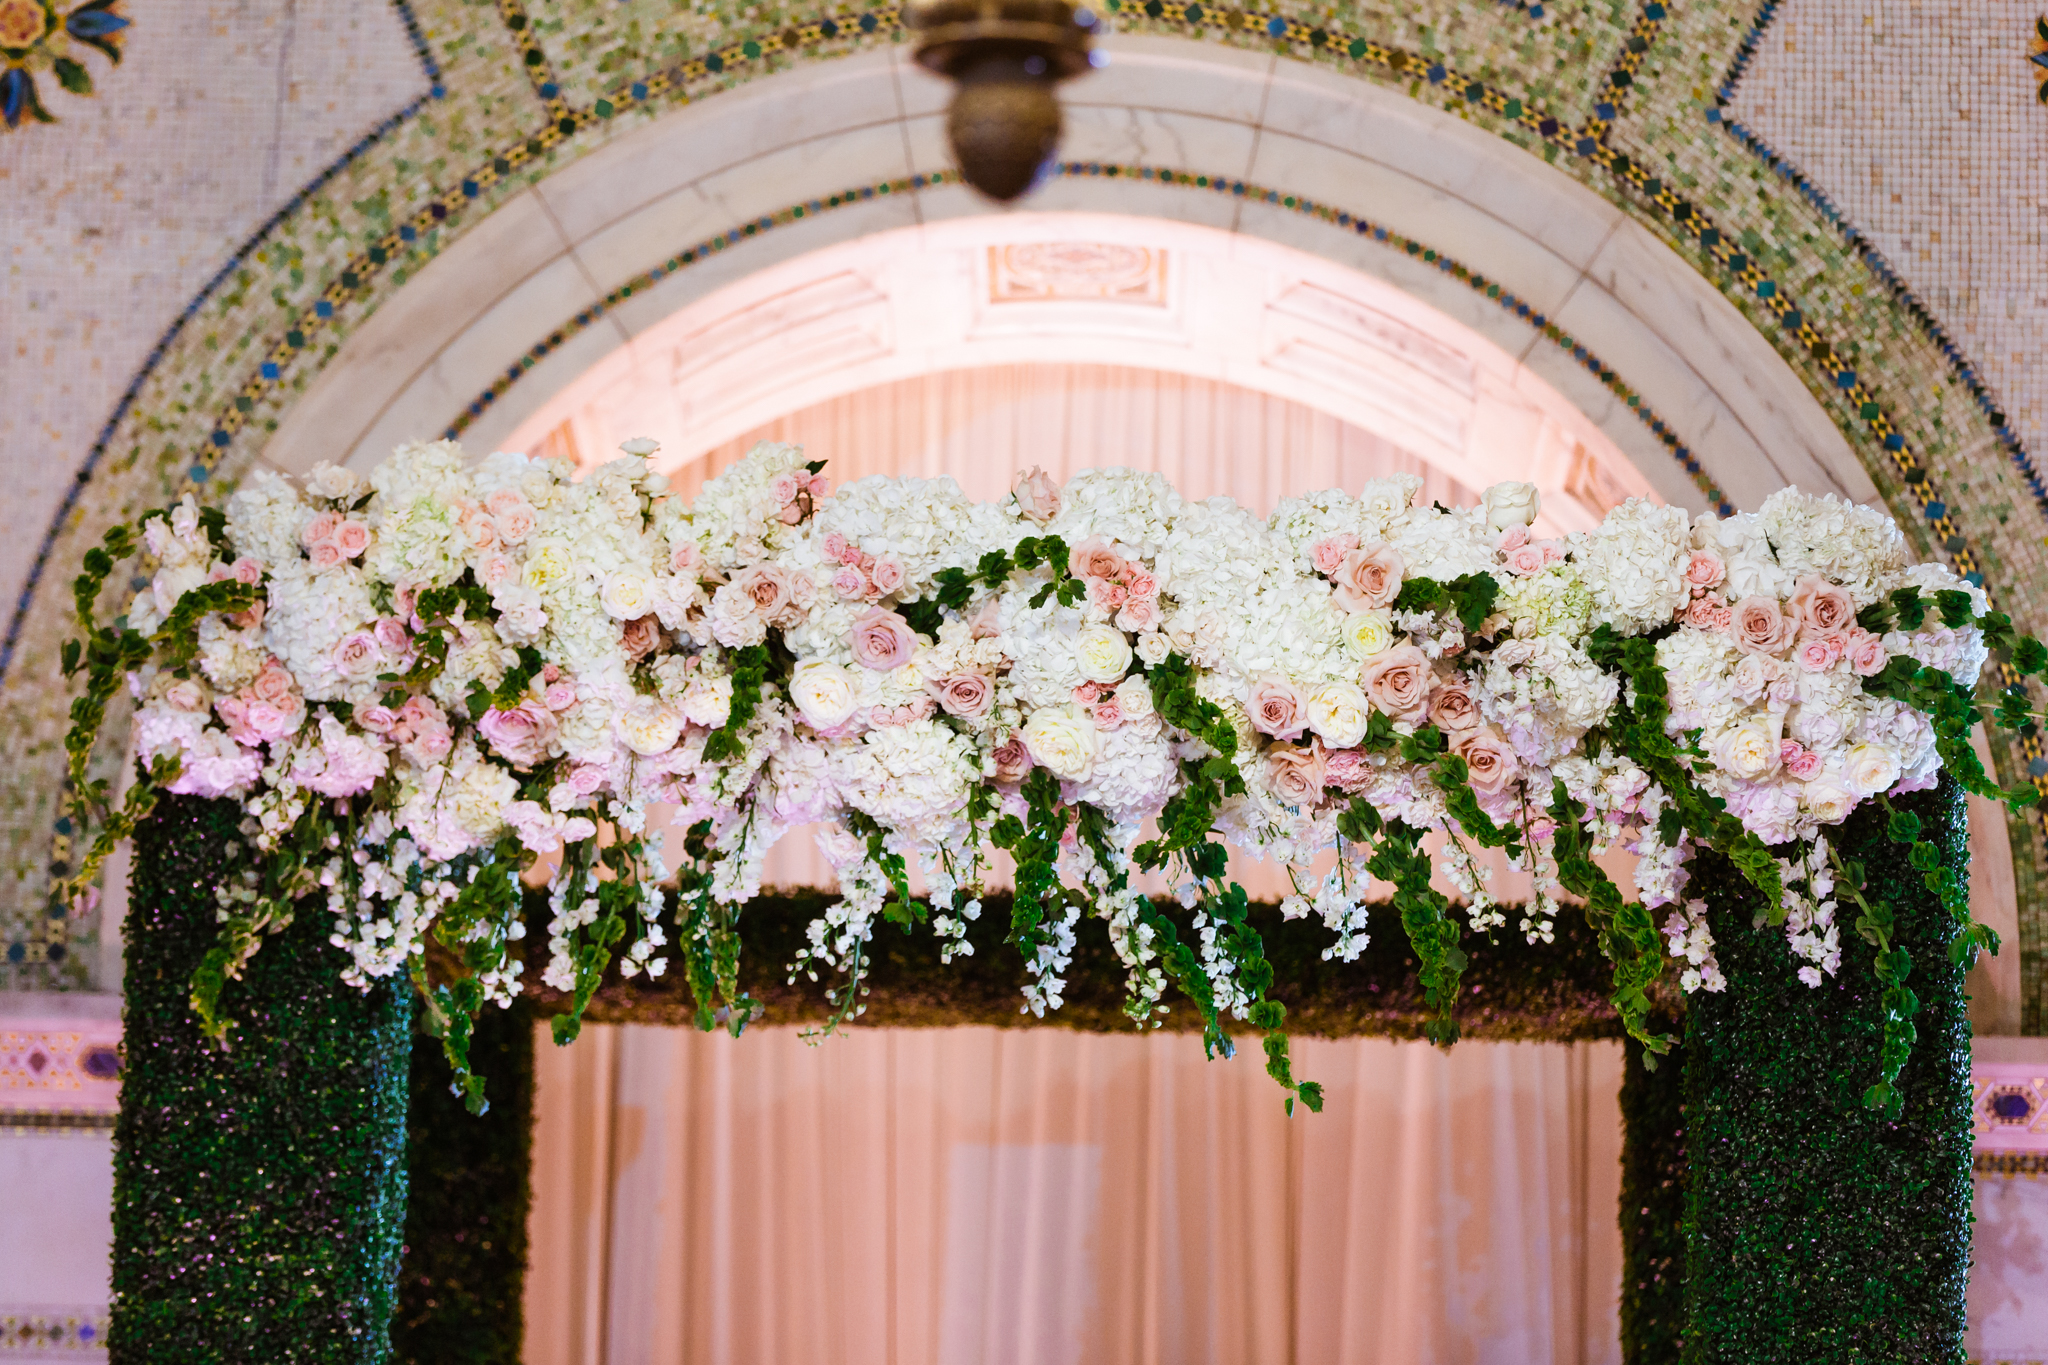 Decor and chuppah by Fleur at the Chicago Cultural Center